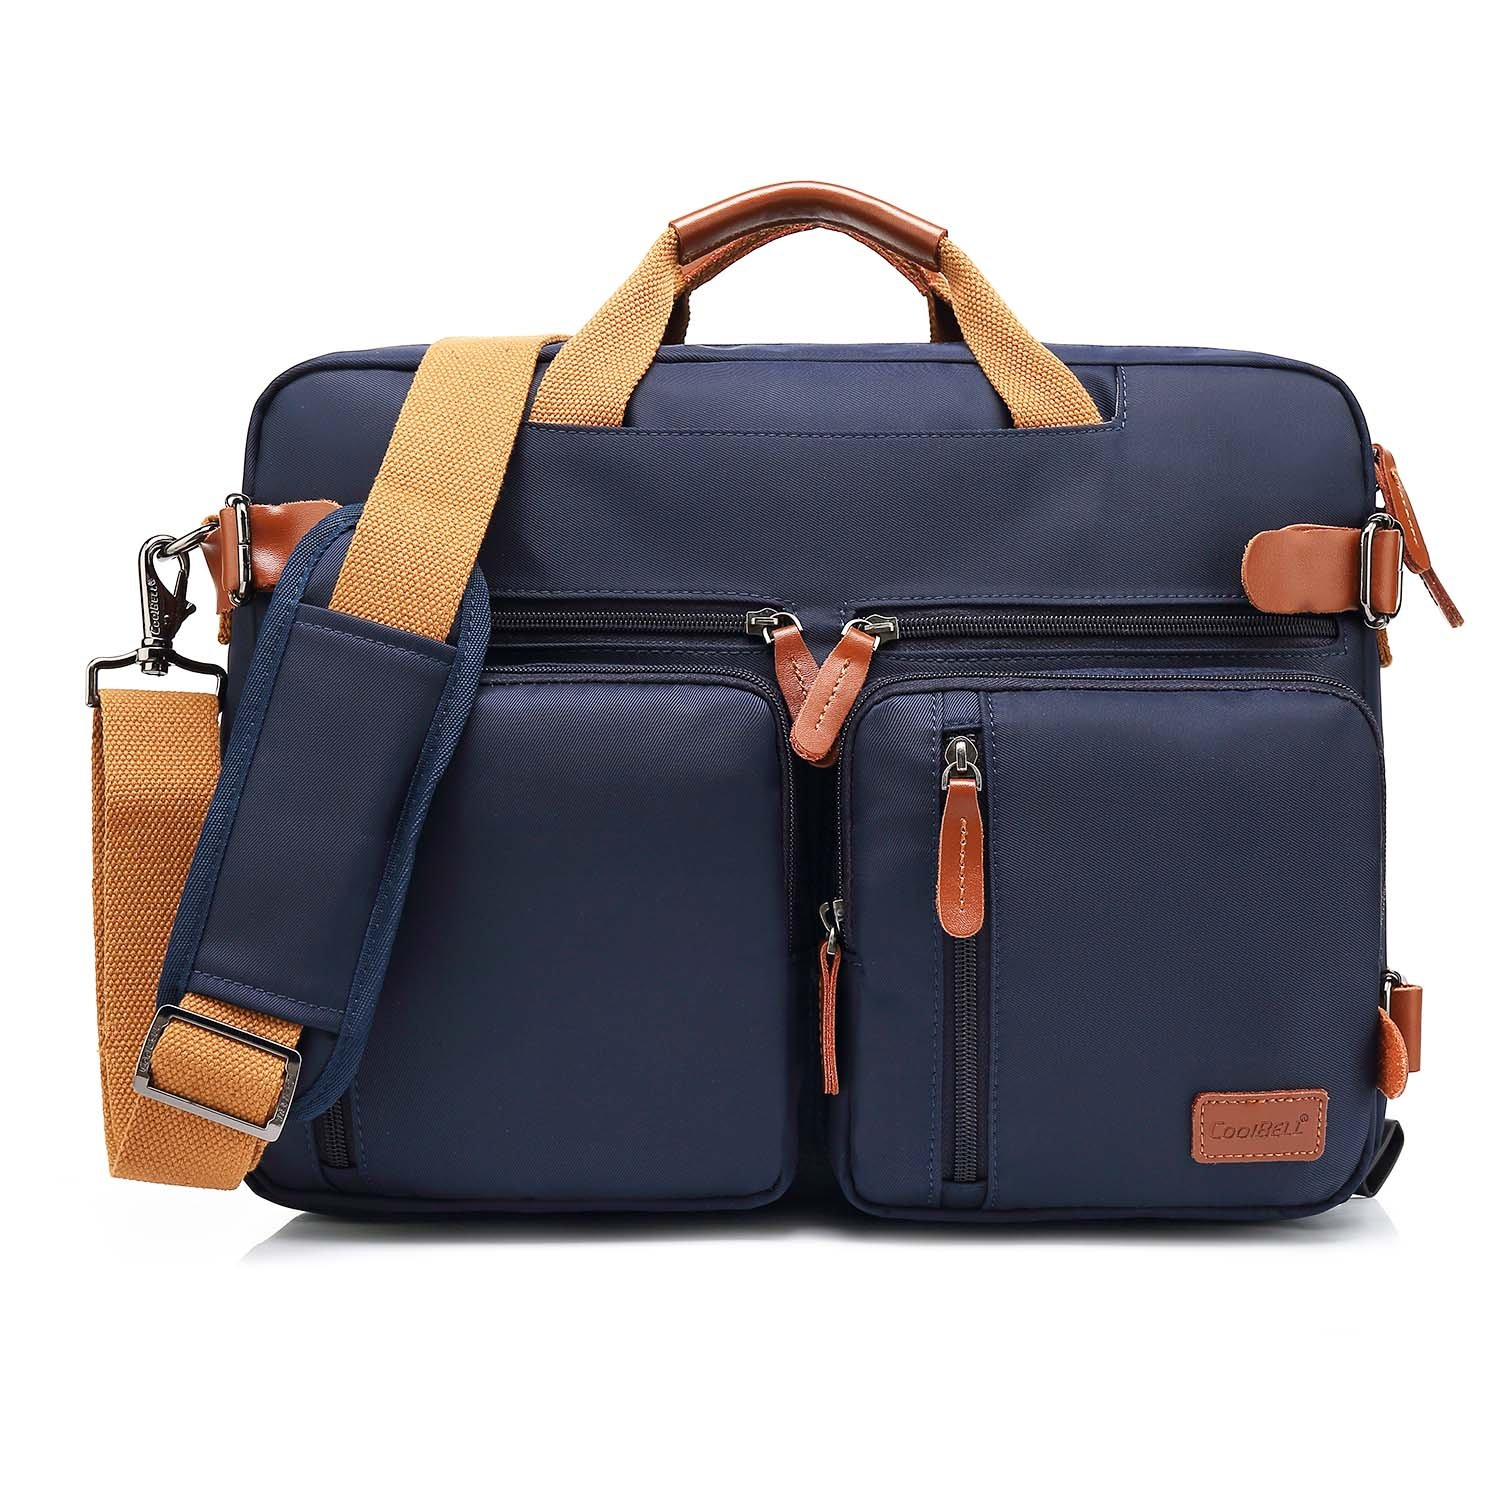 Amzbag Convertible Backpack Laptop Messenger Bag Book Bag School Bag Shoulder Bag Laptop Case Handbag 15.6 inches Business Briefcase Multi-Functional Travel Rucksack for Men/Women(Blue)